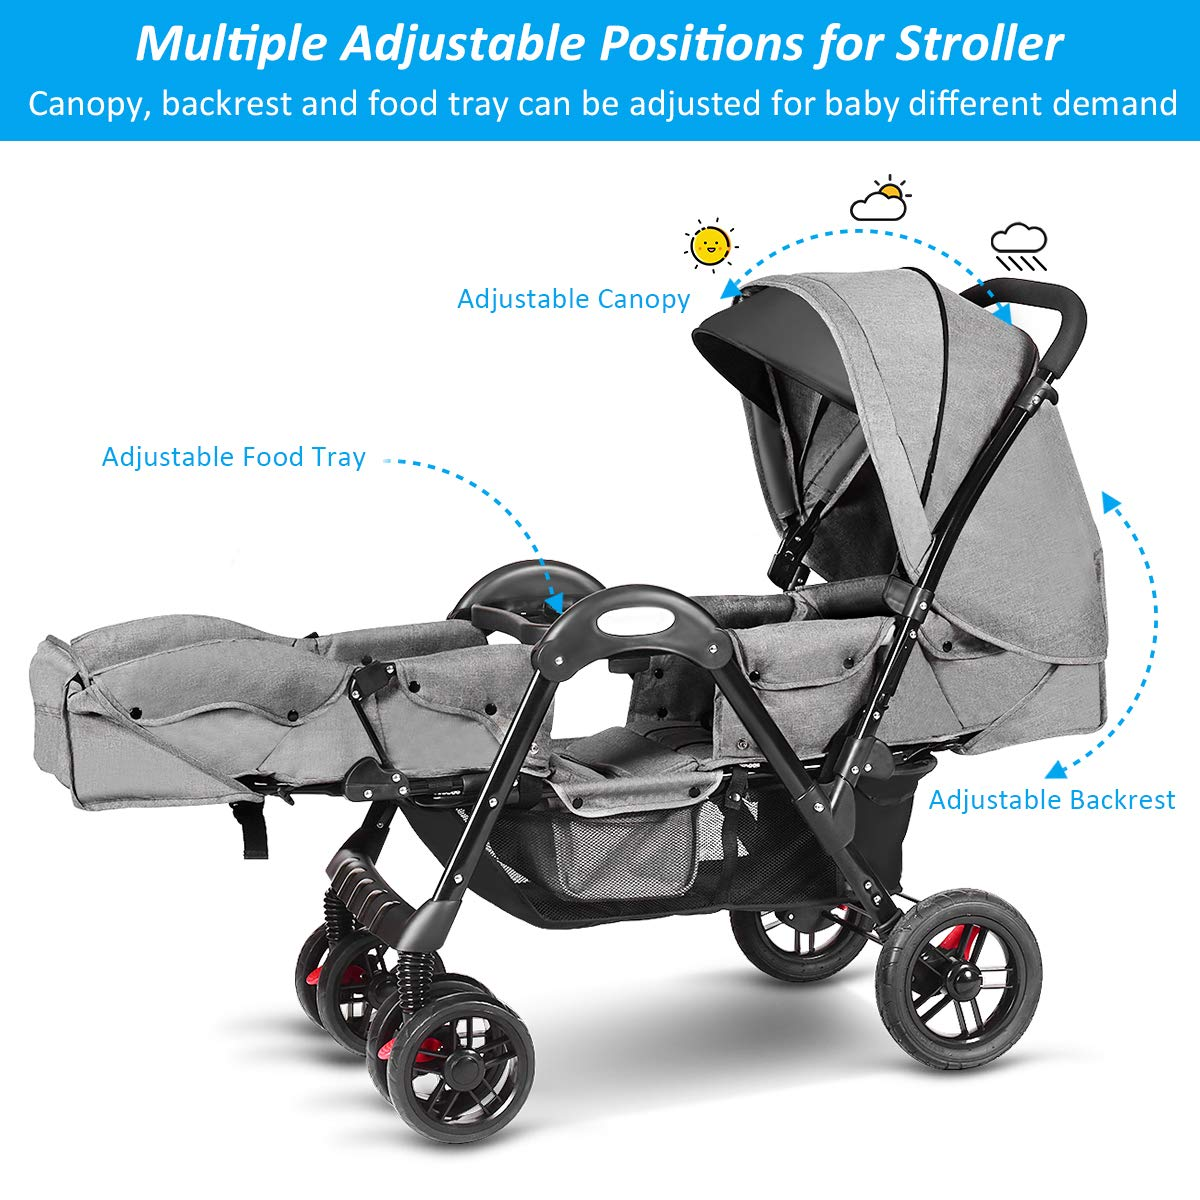 Costzon Double Stroller, Baby Face to Face Carriage with Sleep/Sit/Recline Seat, 5-Point Safety Harness, Detachable Food Tray, Large Storage Space, Gray by Costzon (Image #3)